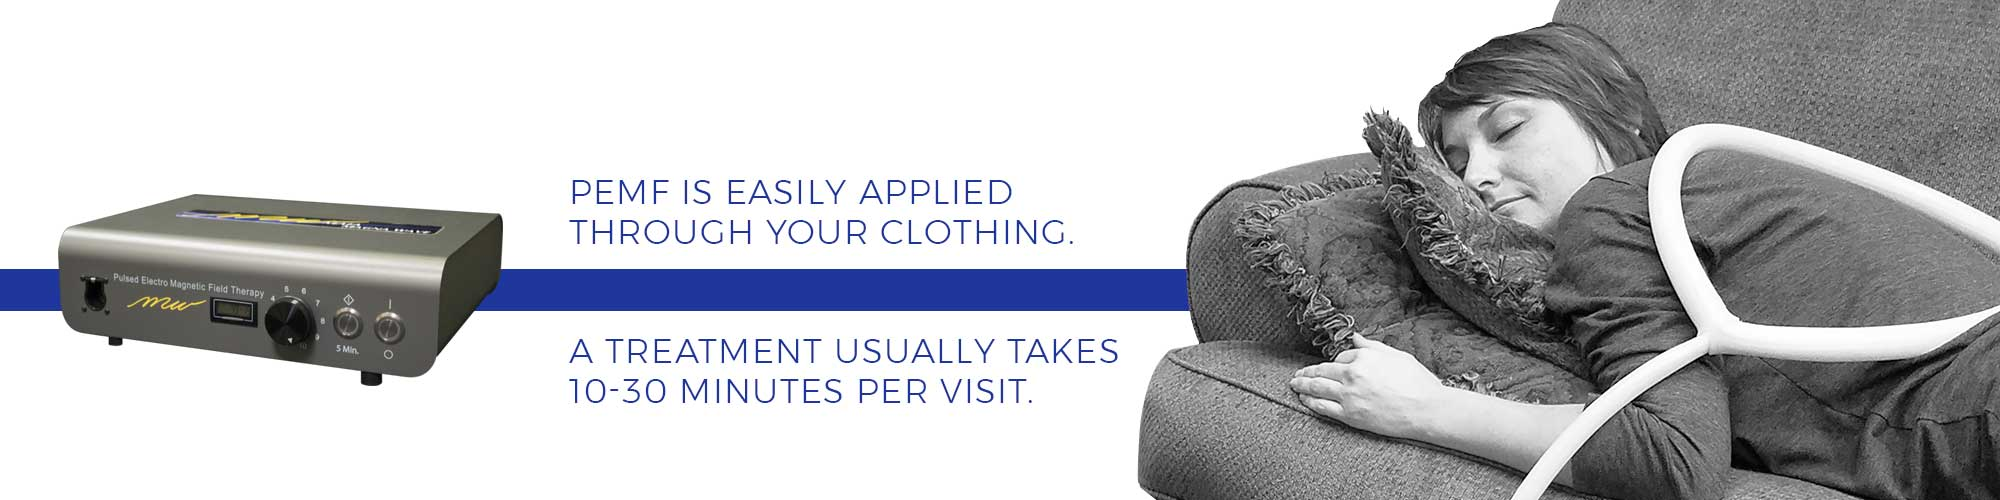 PEMF is easily applied through your clothing. A treatment usually takes 10-30 minutes per visit.